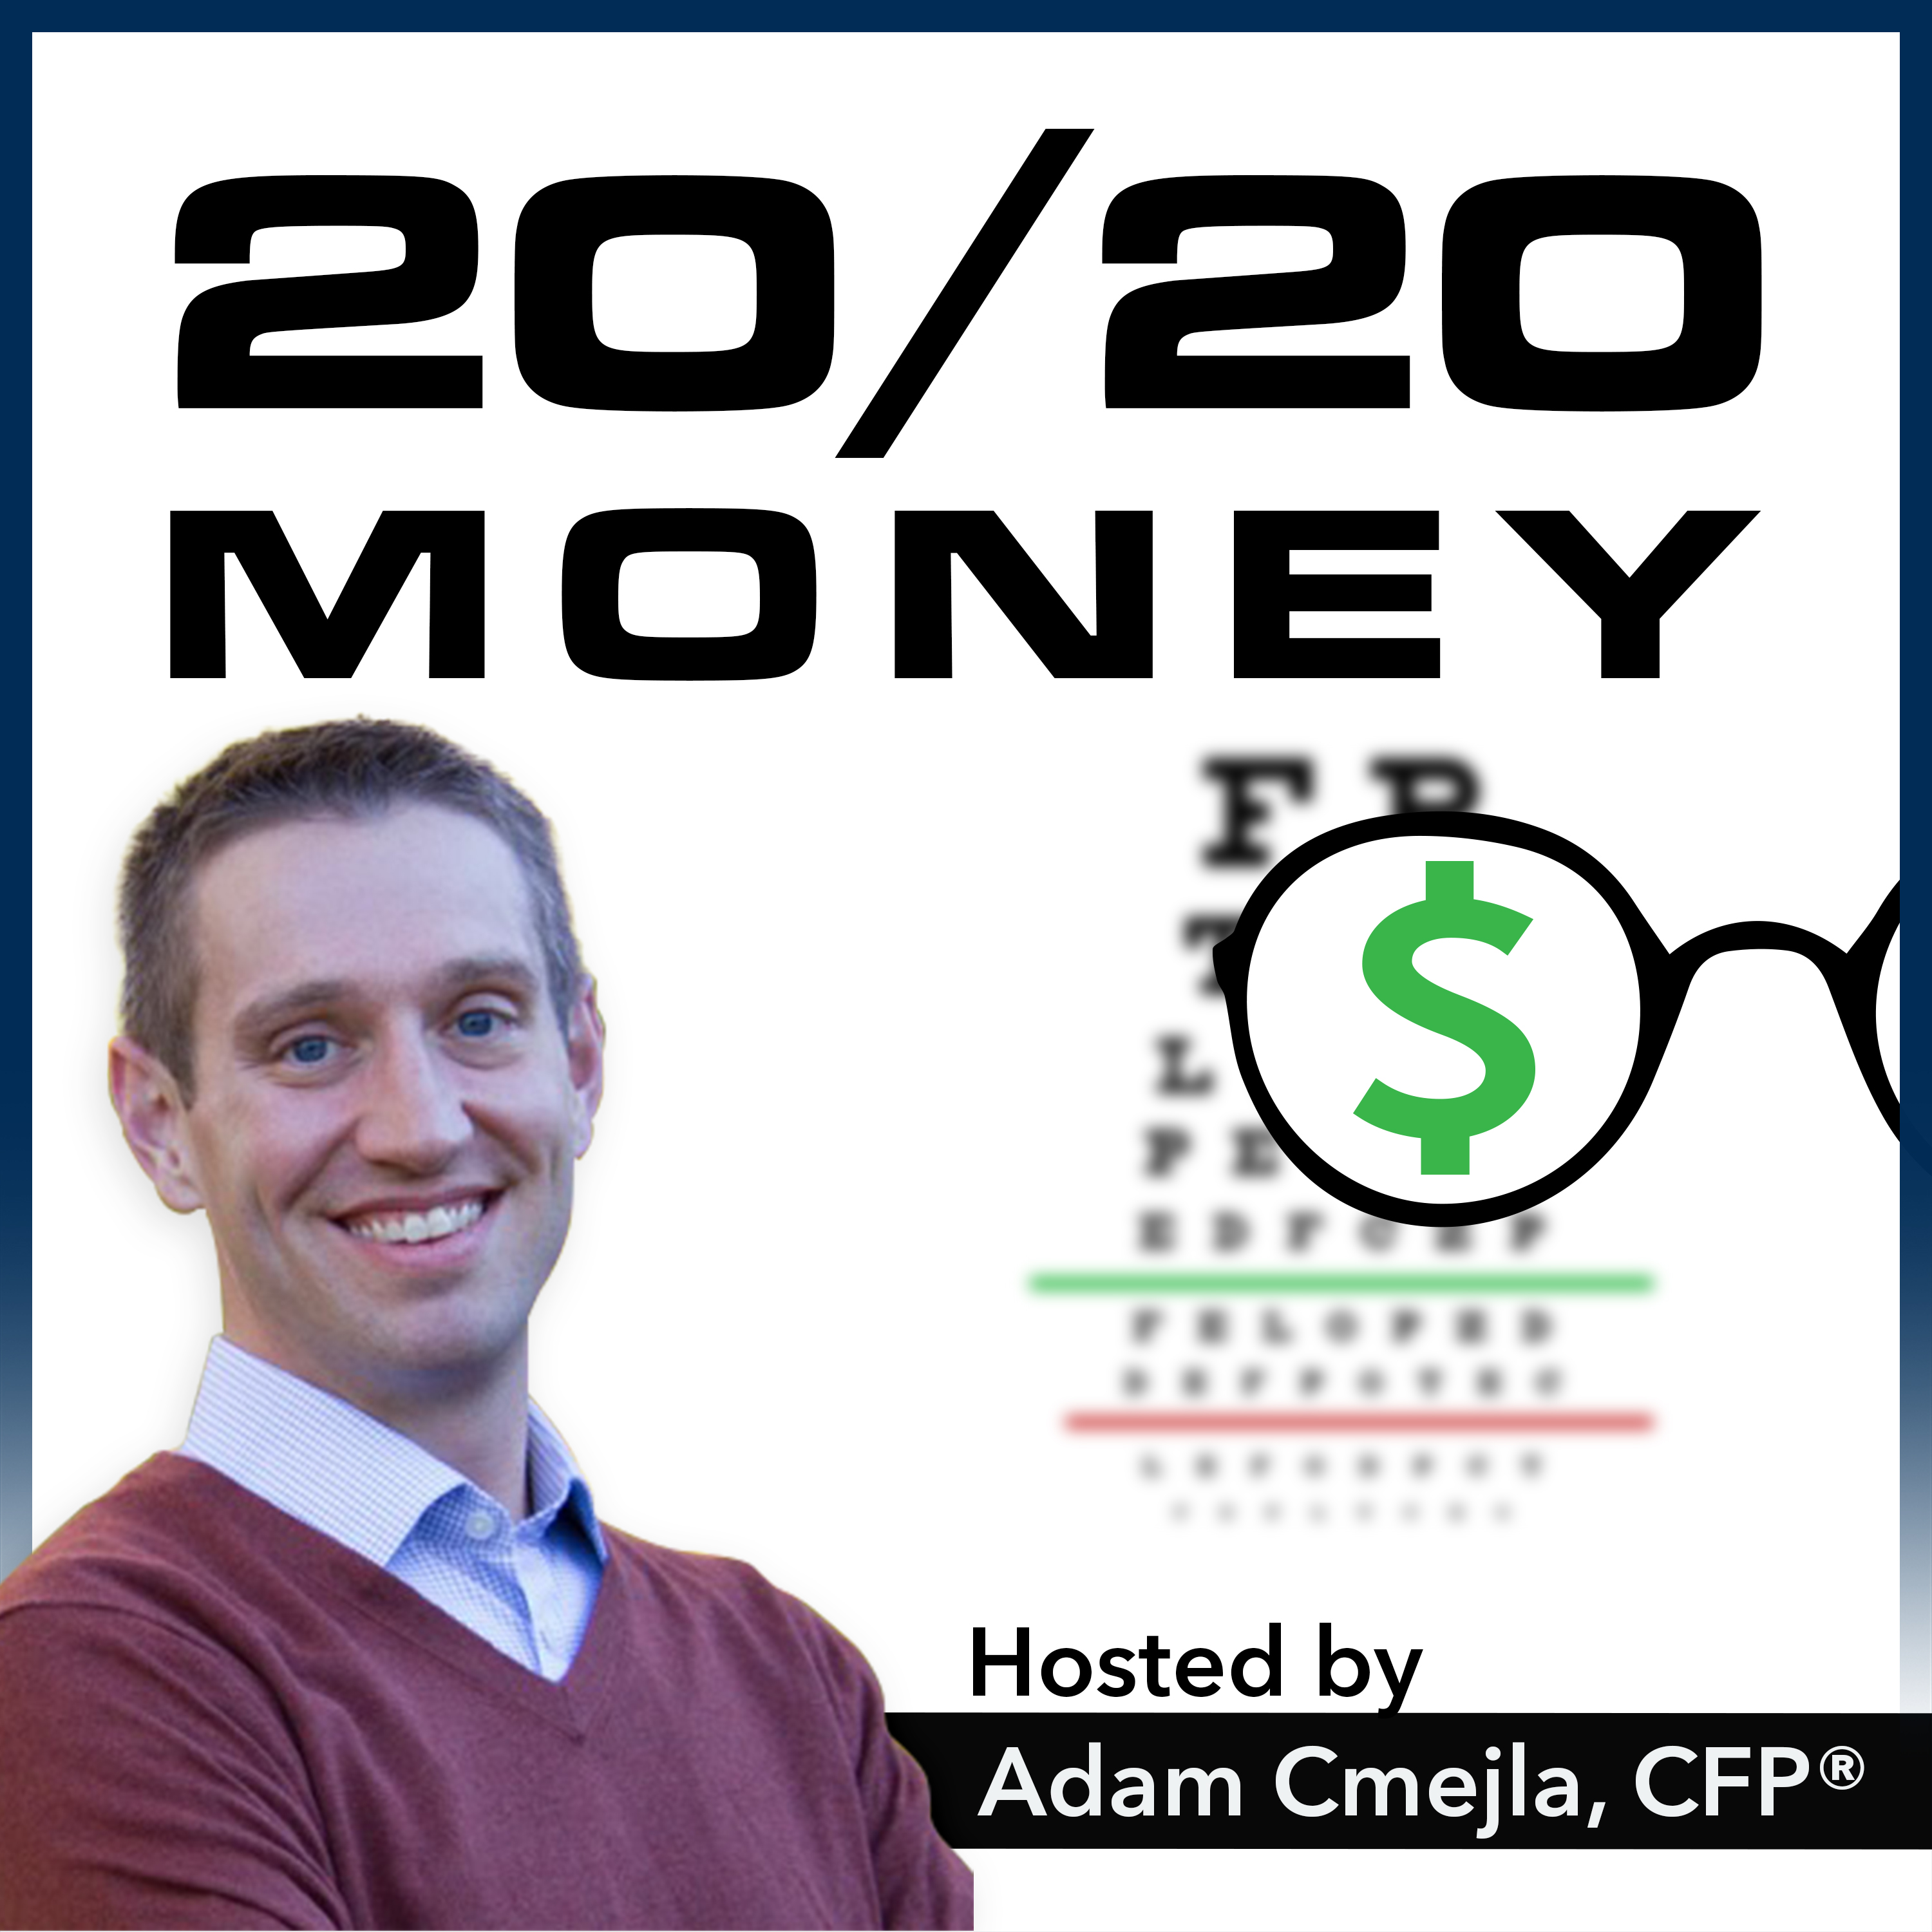 20/20 Money Podcast